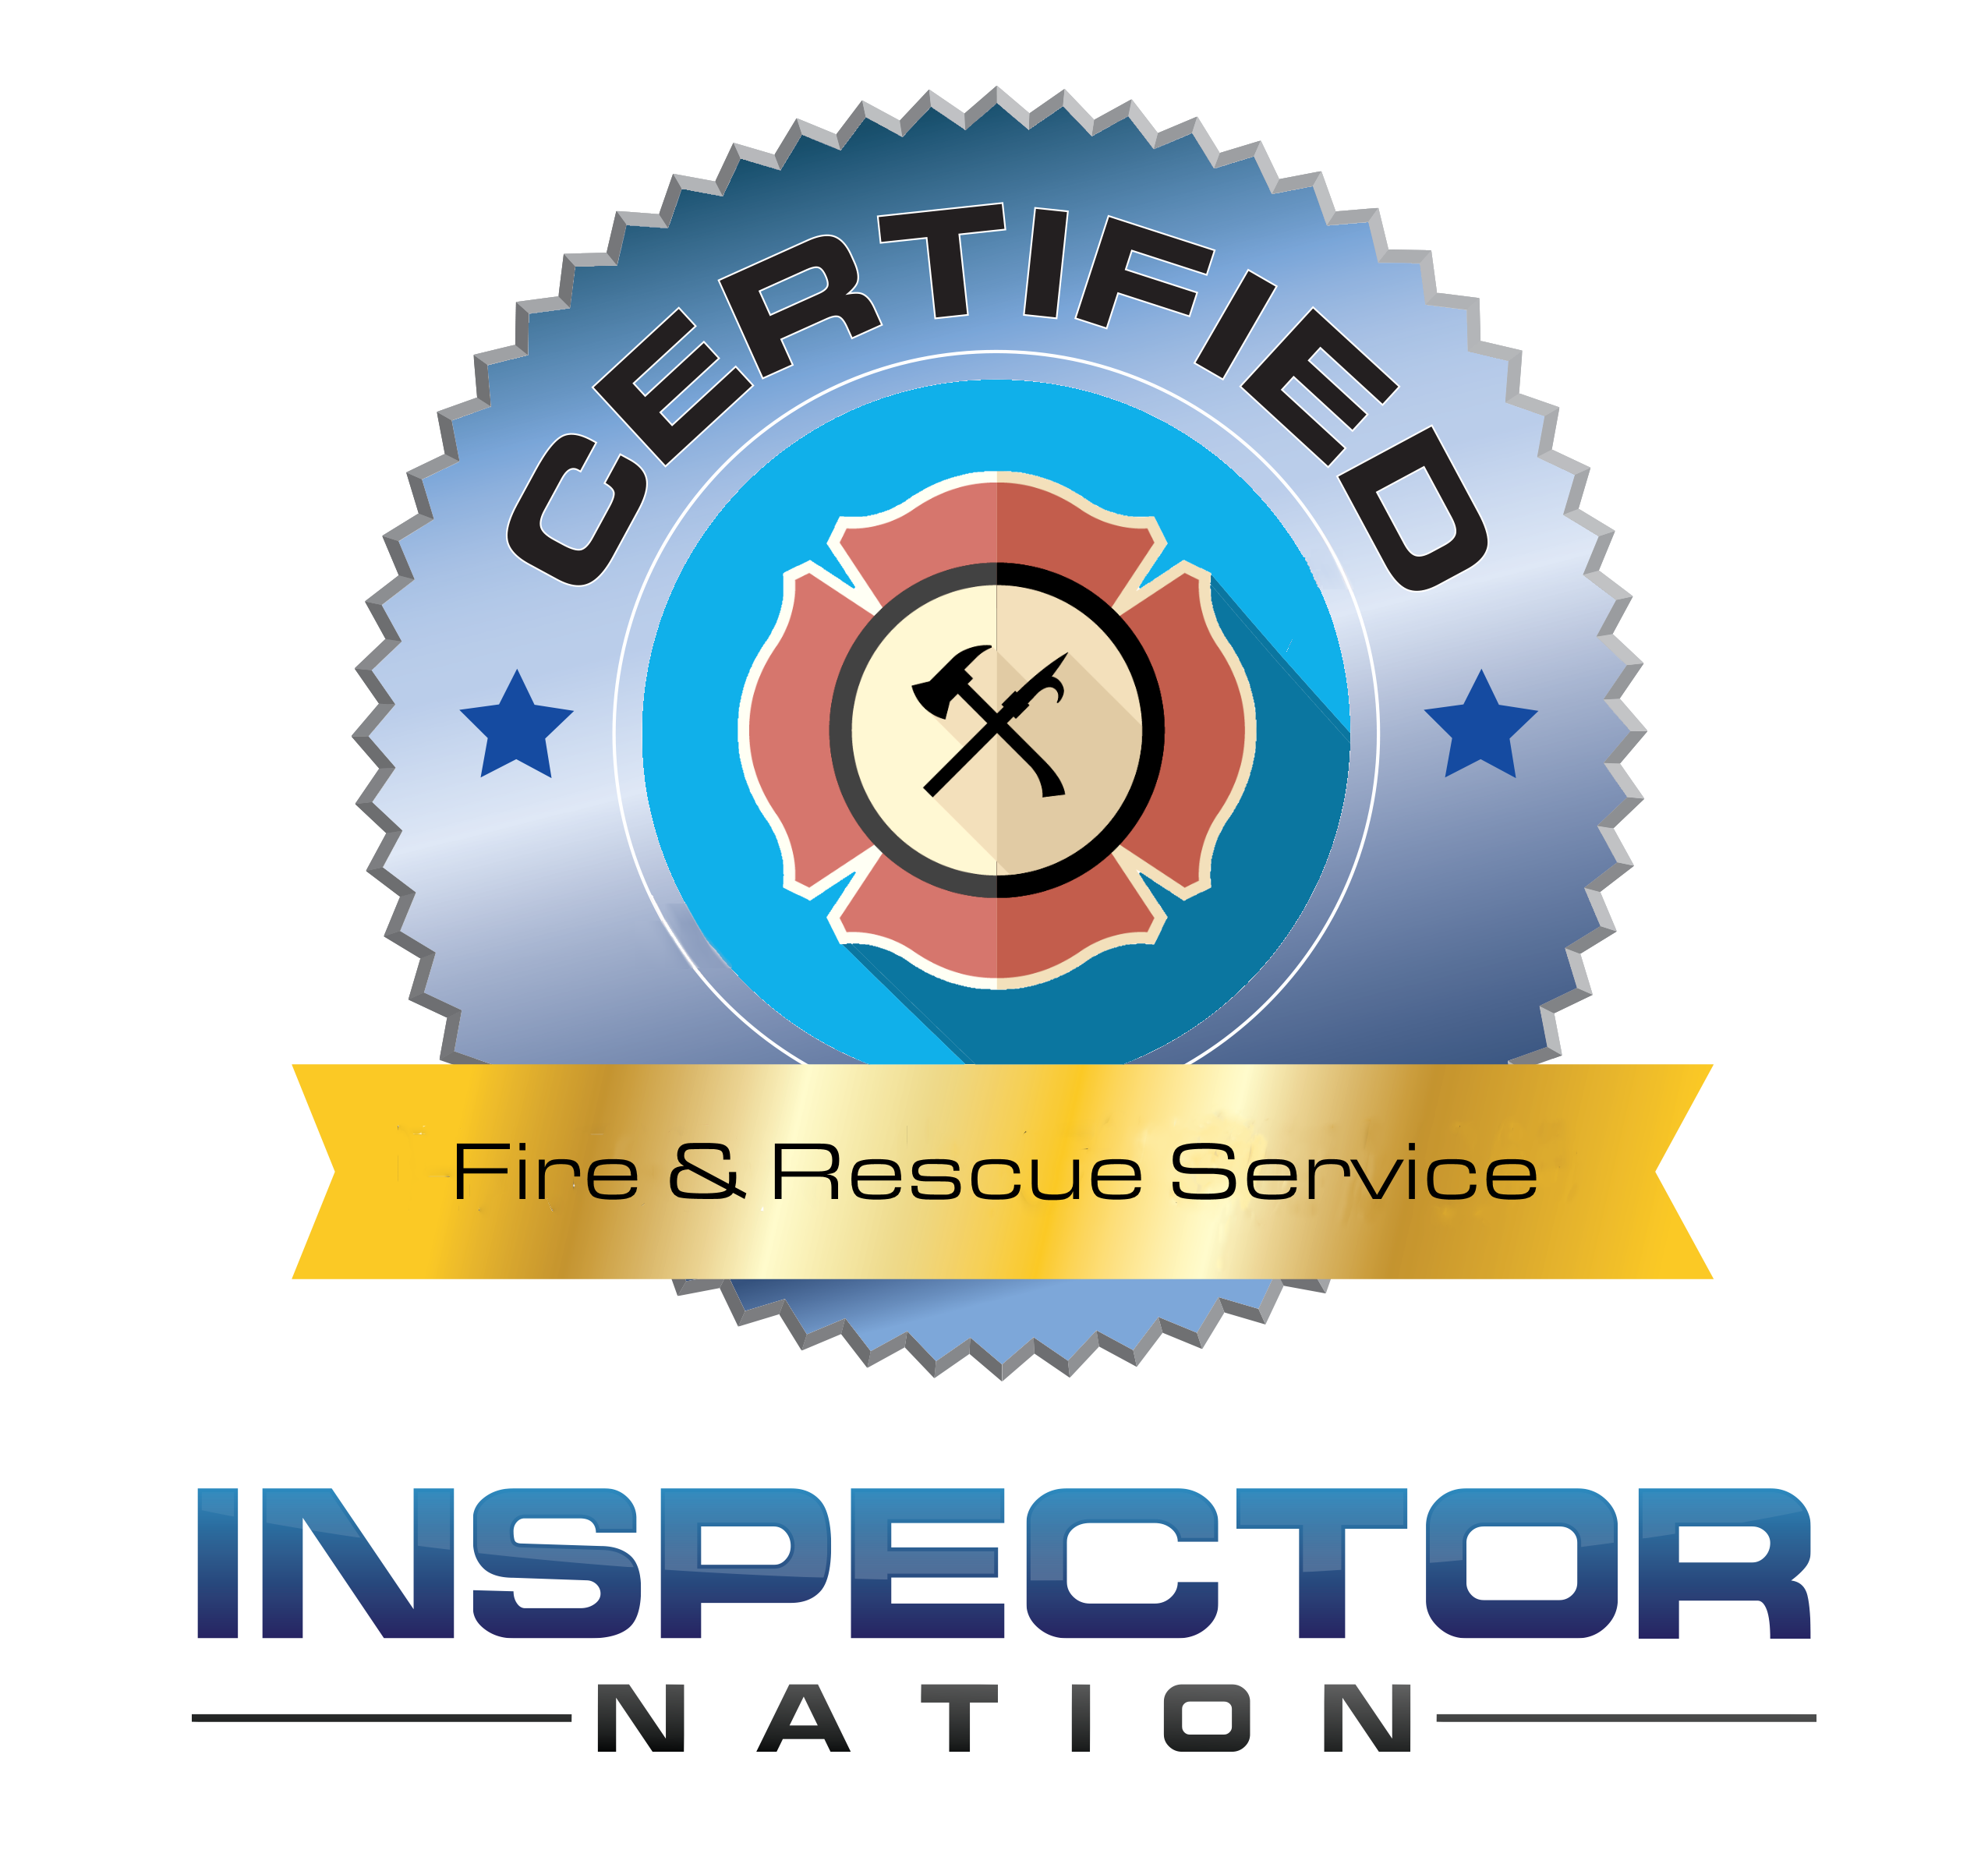 fire and rescue service inspector nation certified home inspector badge emblem icon